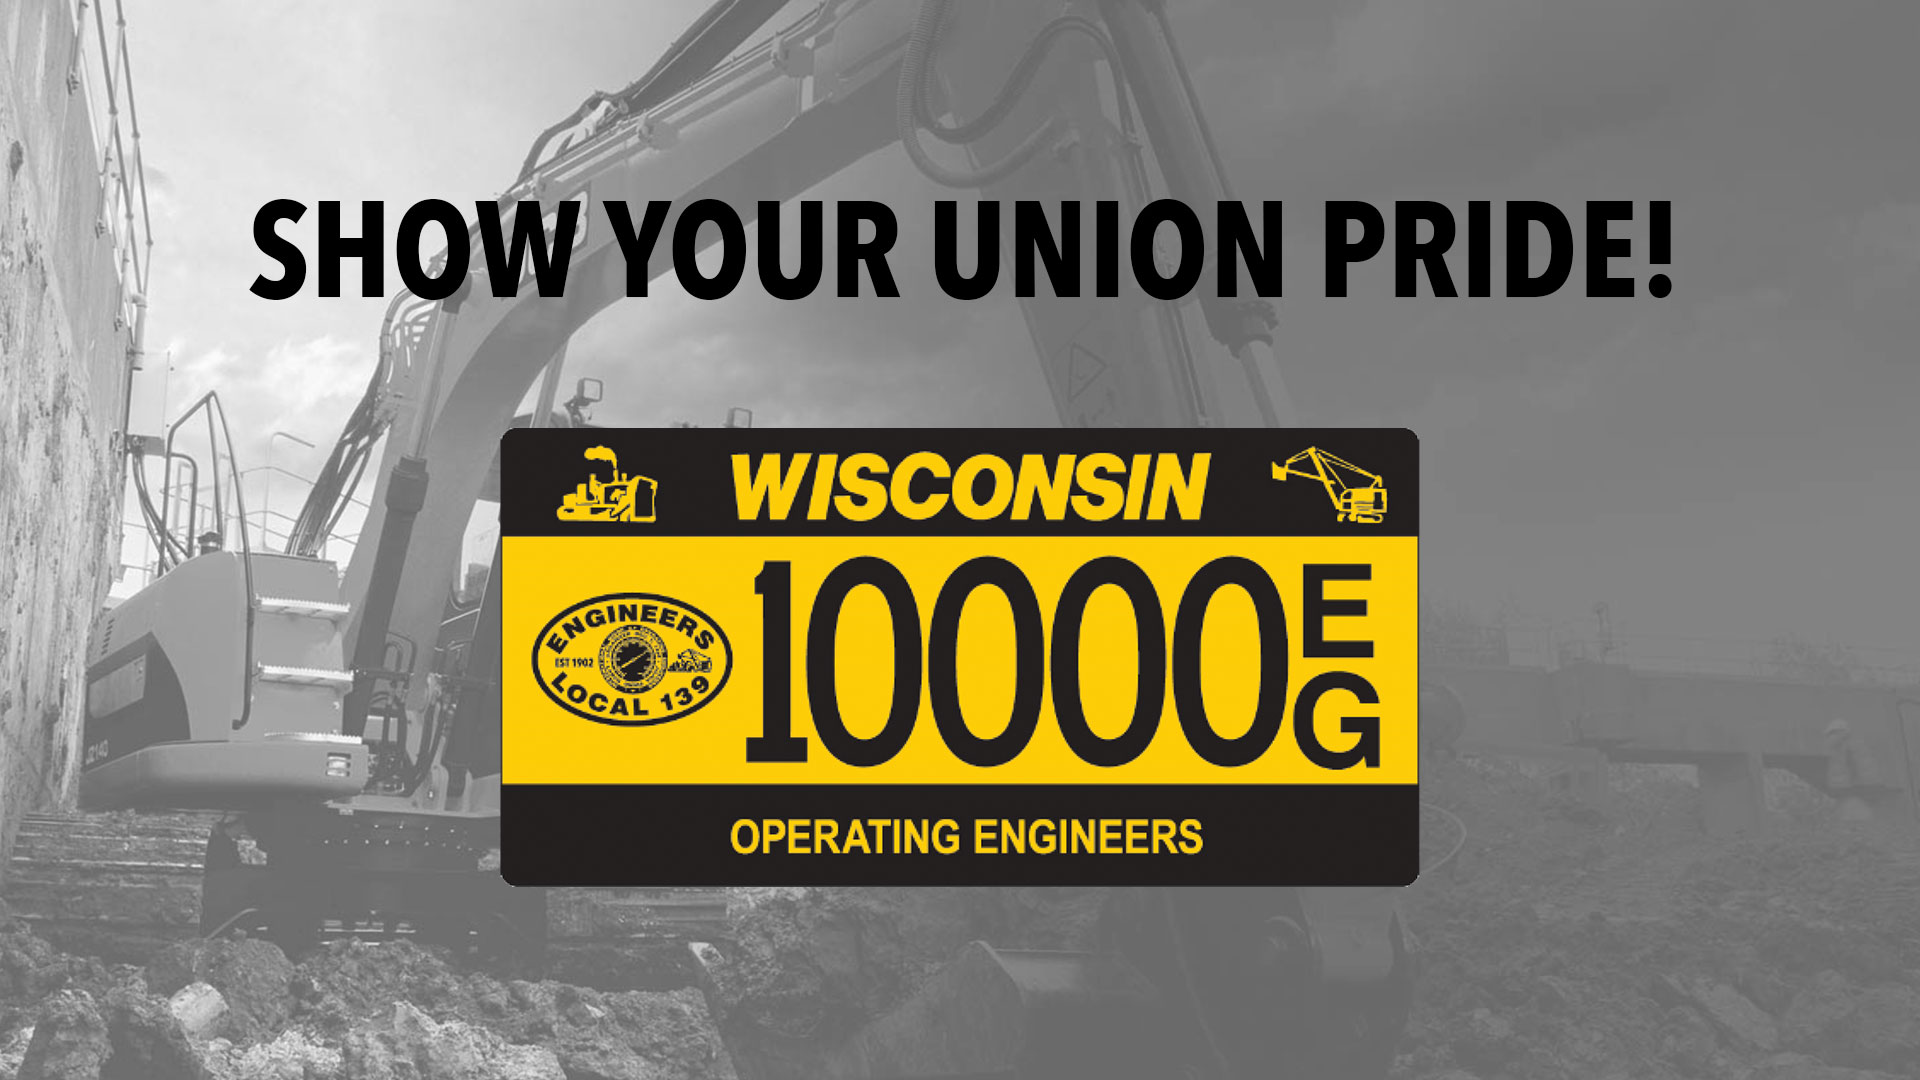 Show your union pride with the available customized license plate.